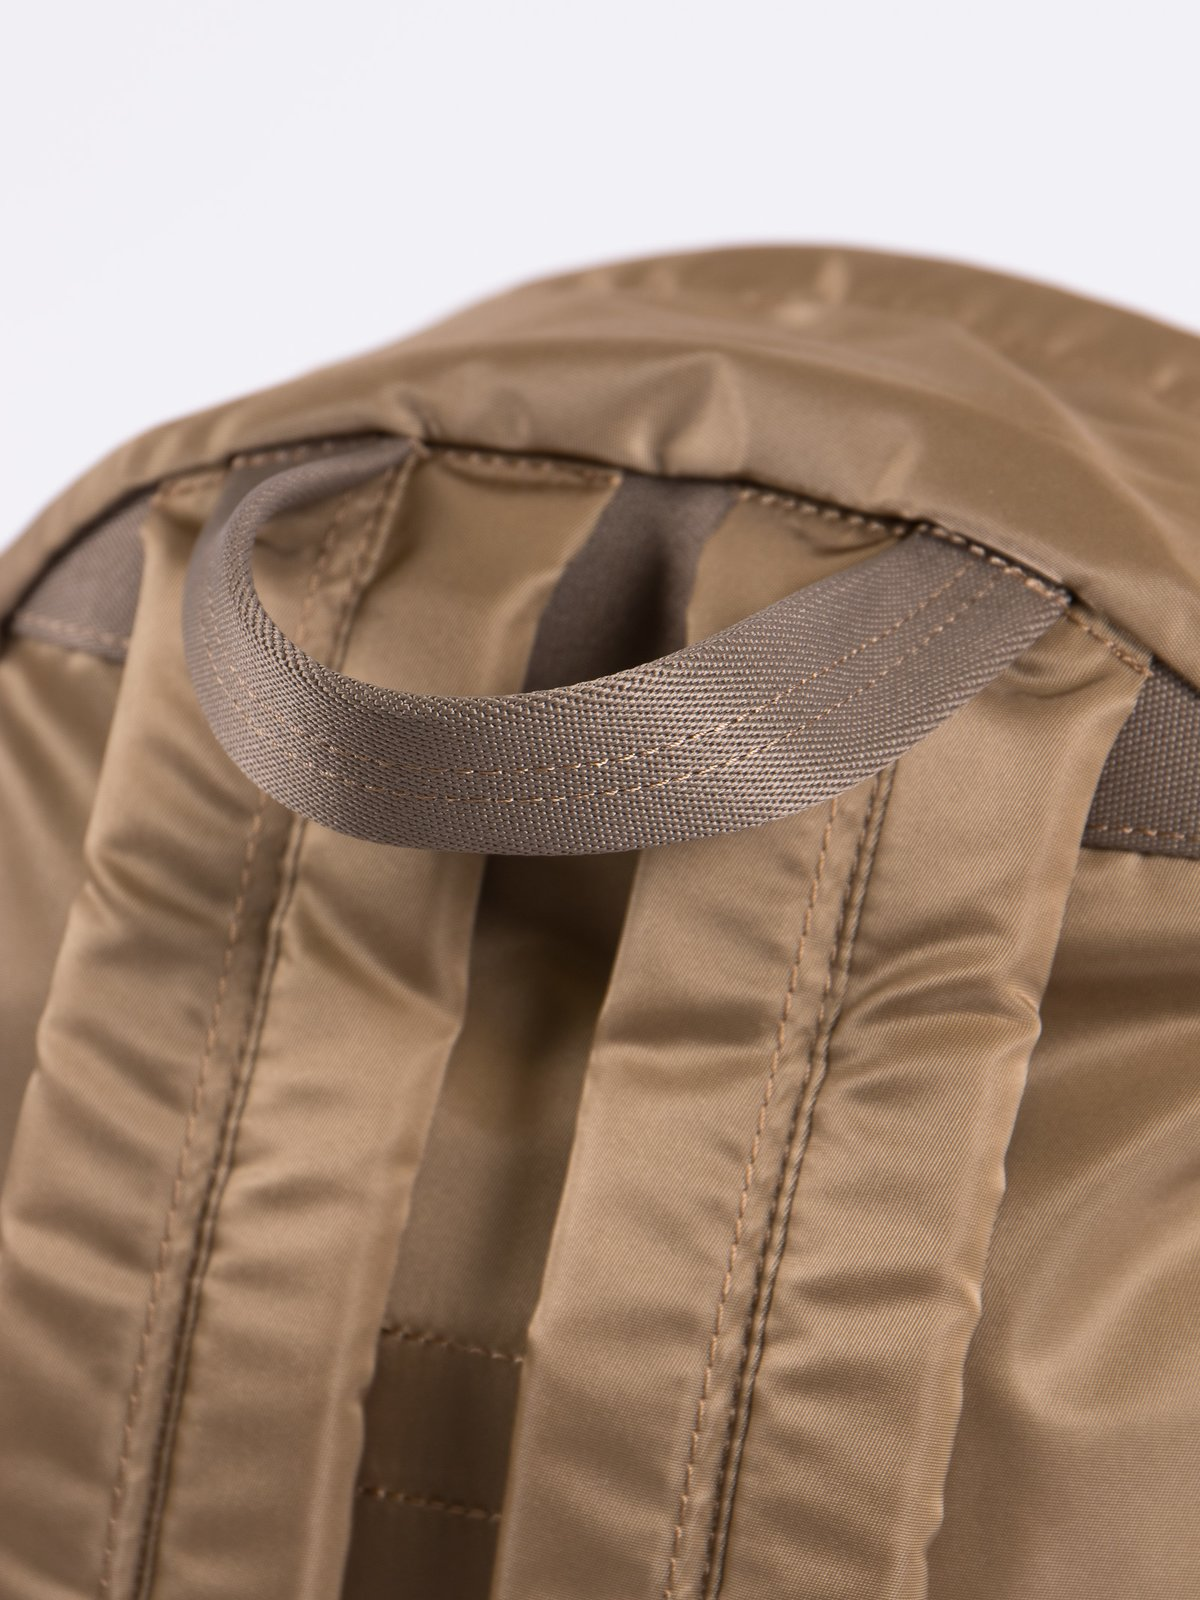 Beige OE Arrow Packable Day Pack - Image 3